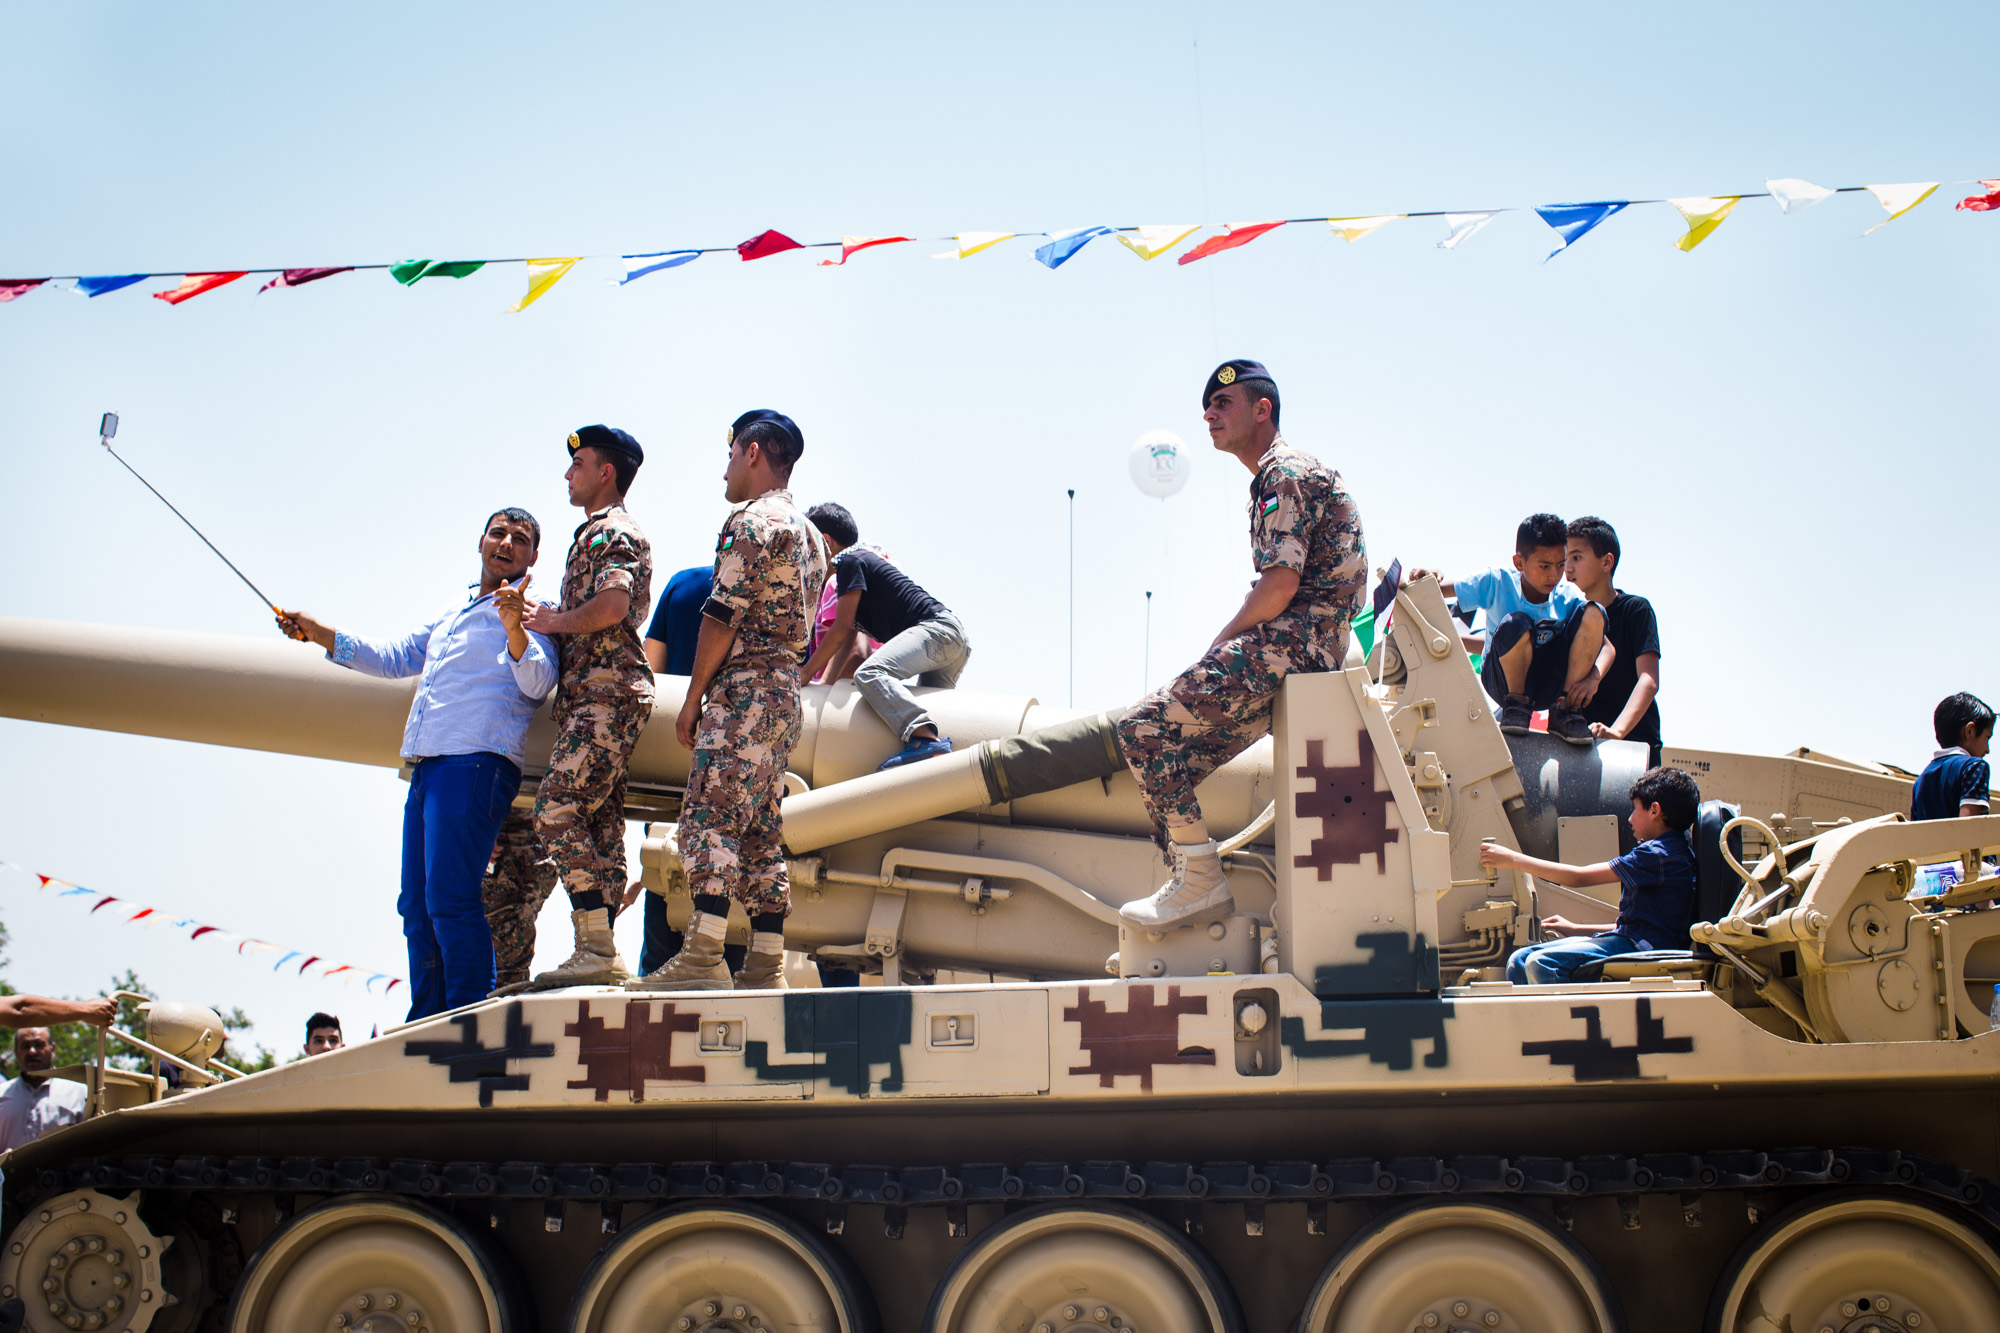 People pose for a selfie with Jordanian soldiers on top of a tank at a festival celebrating the centennial of the Great Arab Revolt in Amman, Jordan on June 3, 2016.